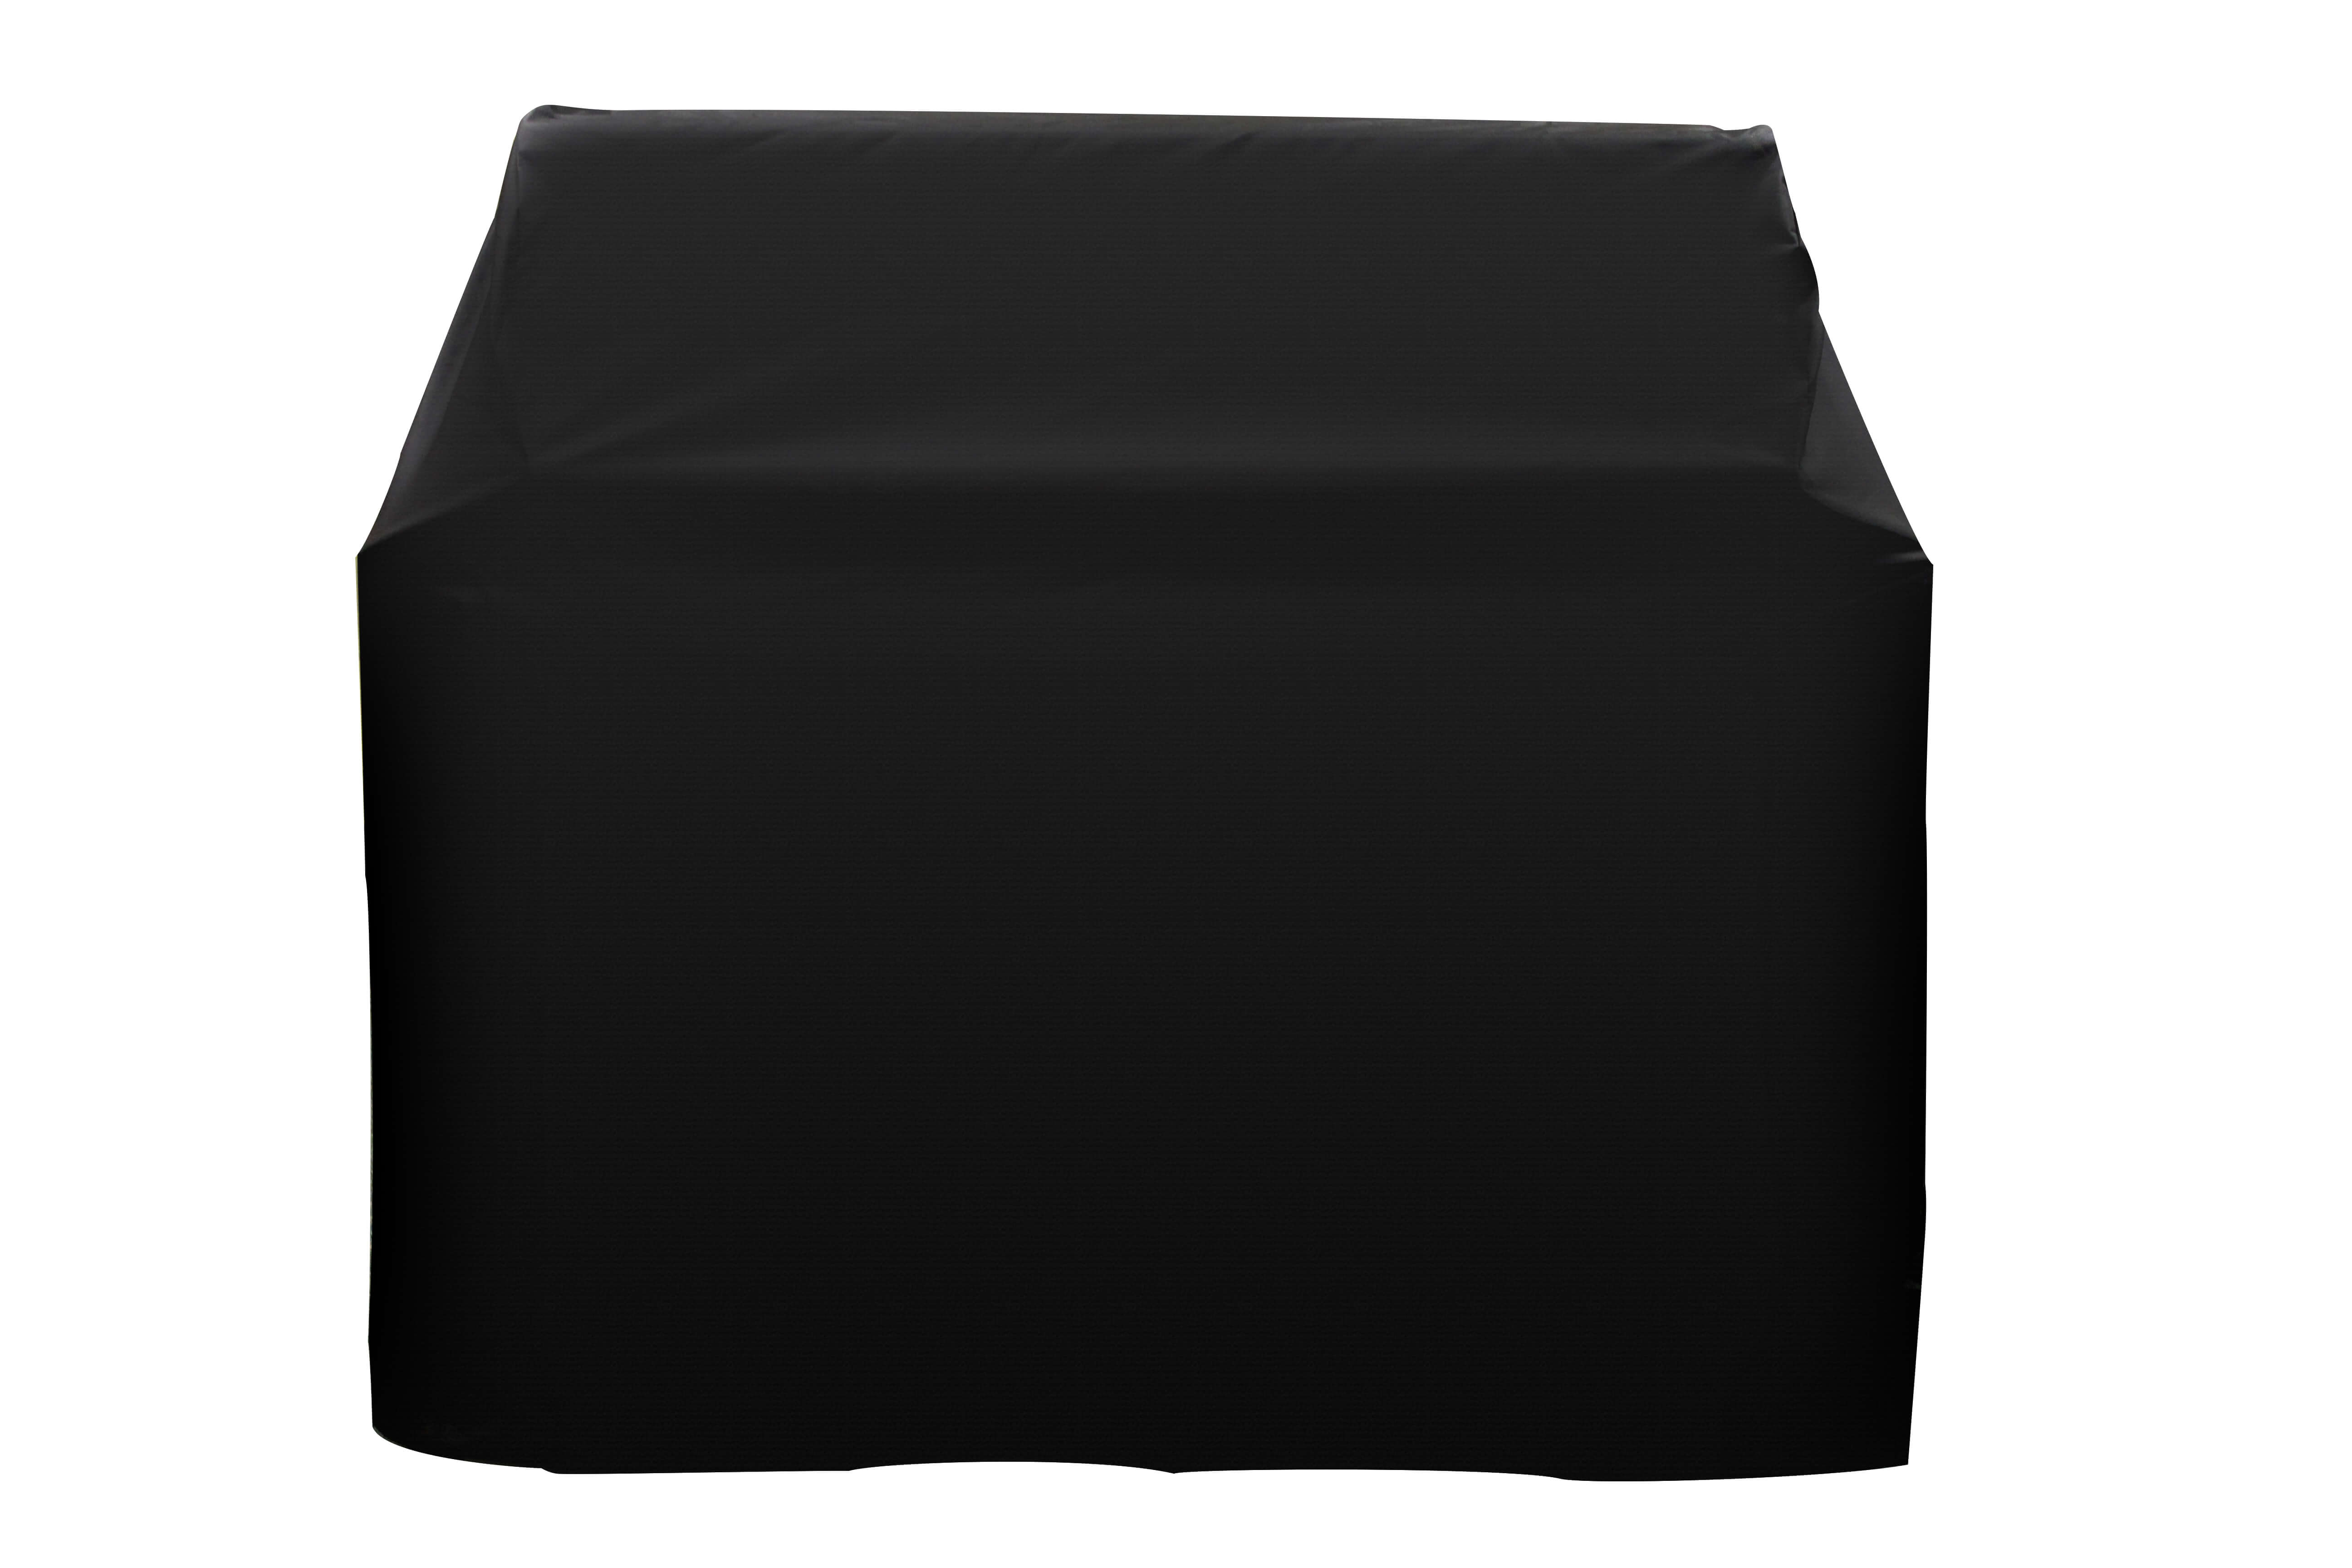 Outdoor-Free-Standing-Grill-Cover